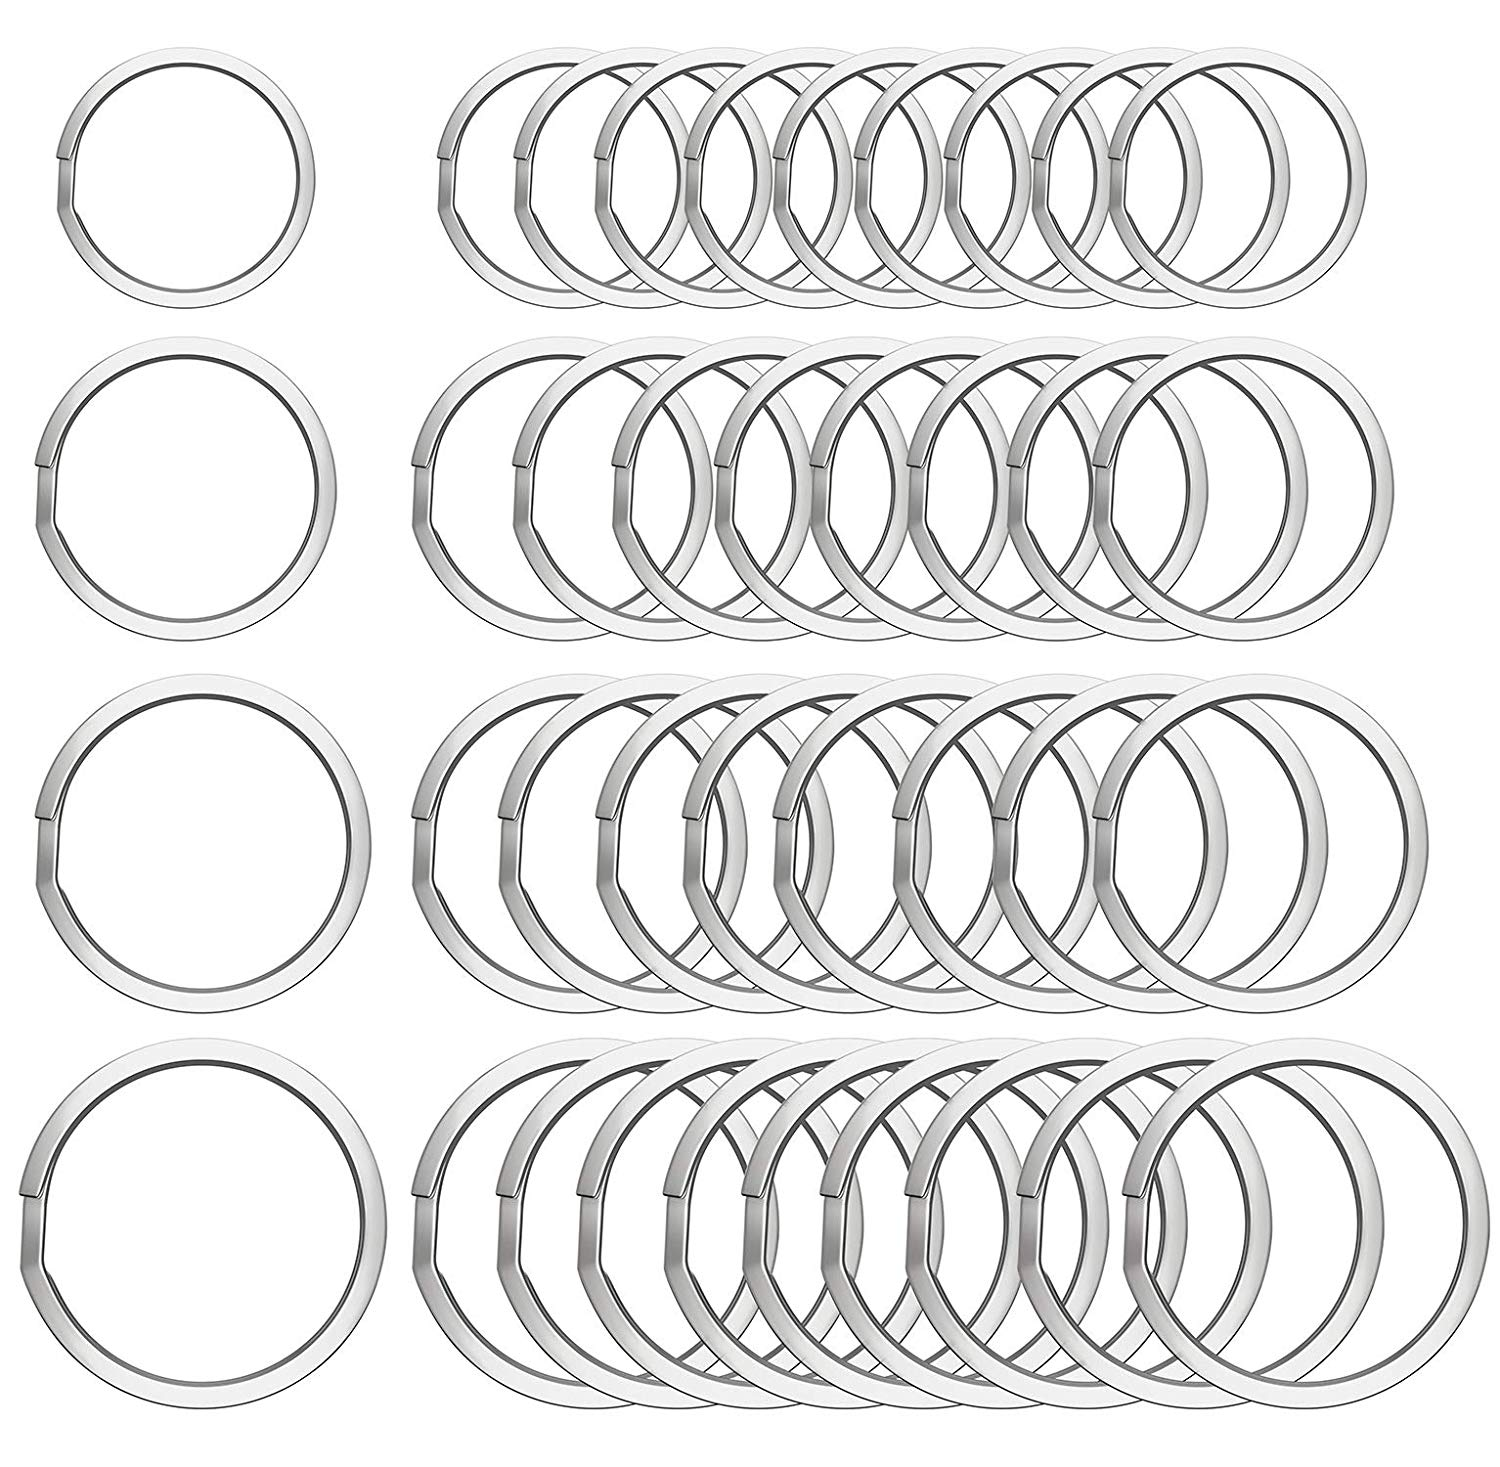 80 Pieces Round Flat Key Chain Rings Metal Key Rings Split Key Rings for Home Car Keys Organization, Arts & Crafts(Four Sizes)